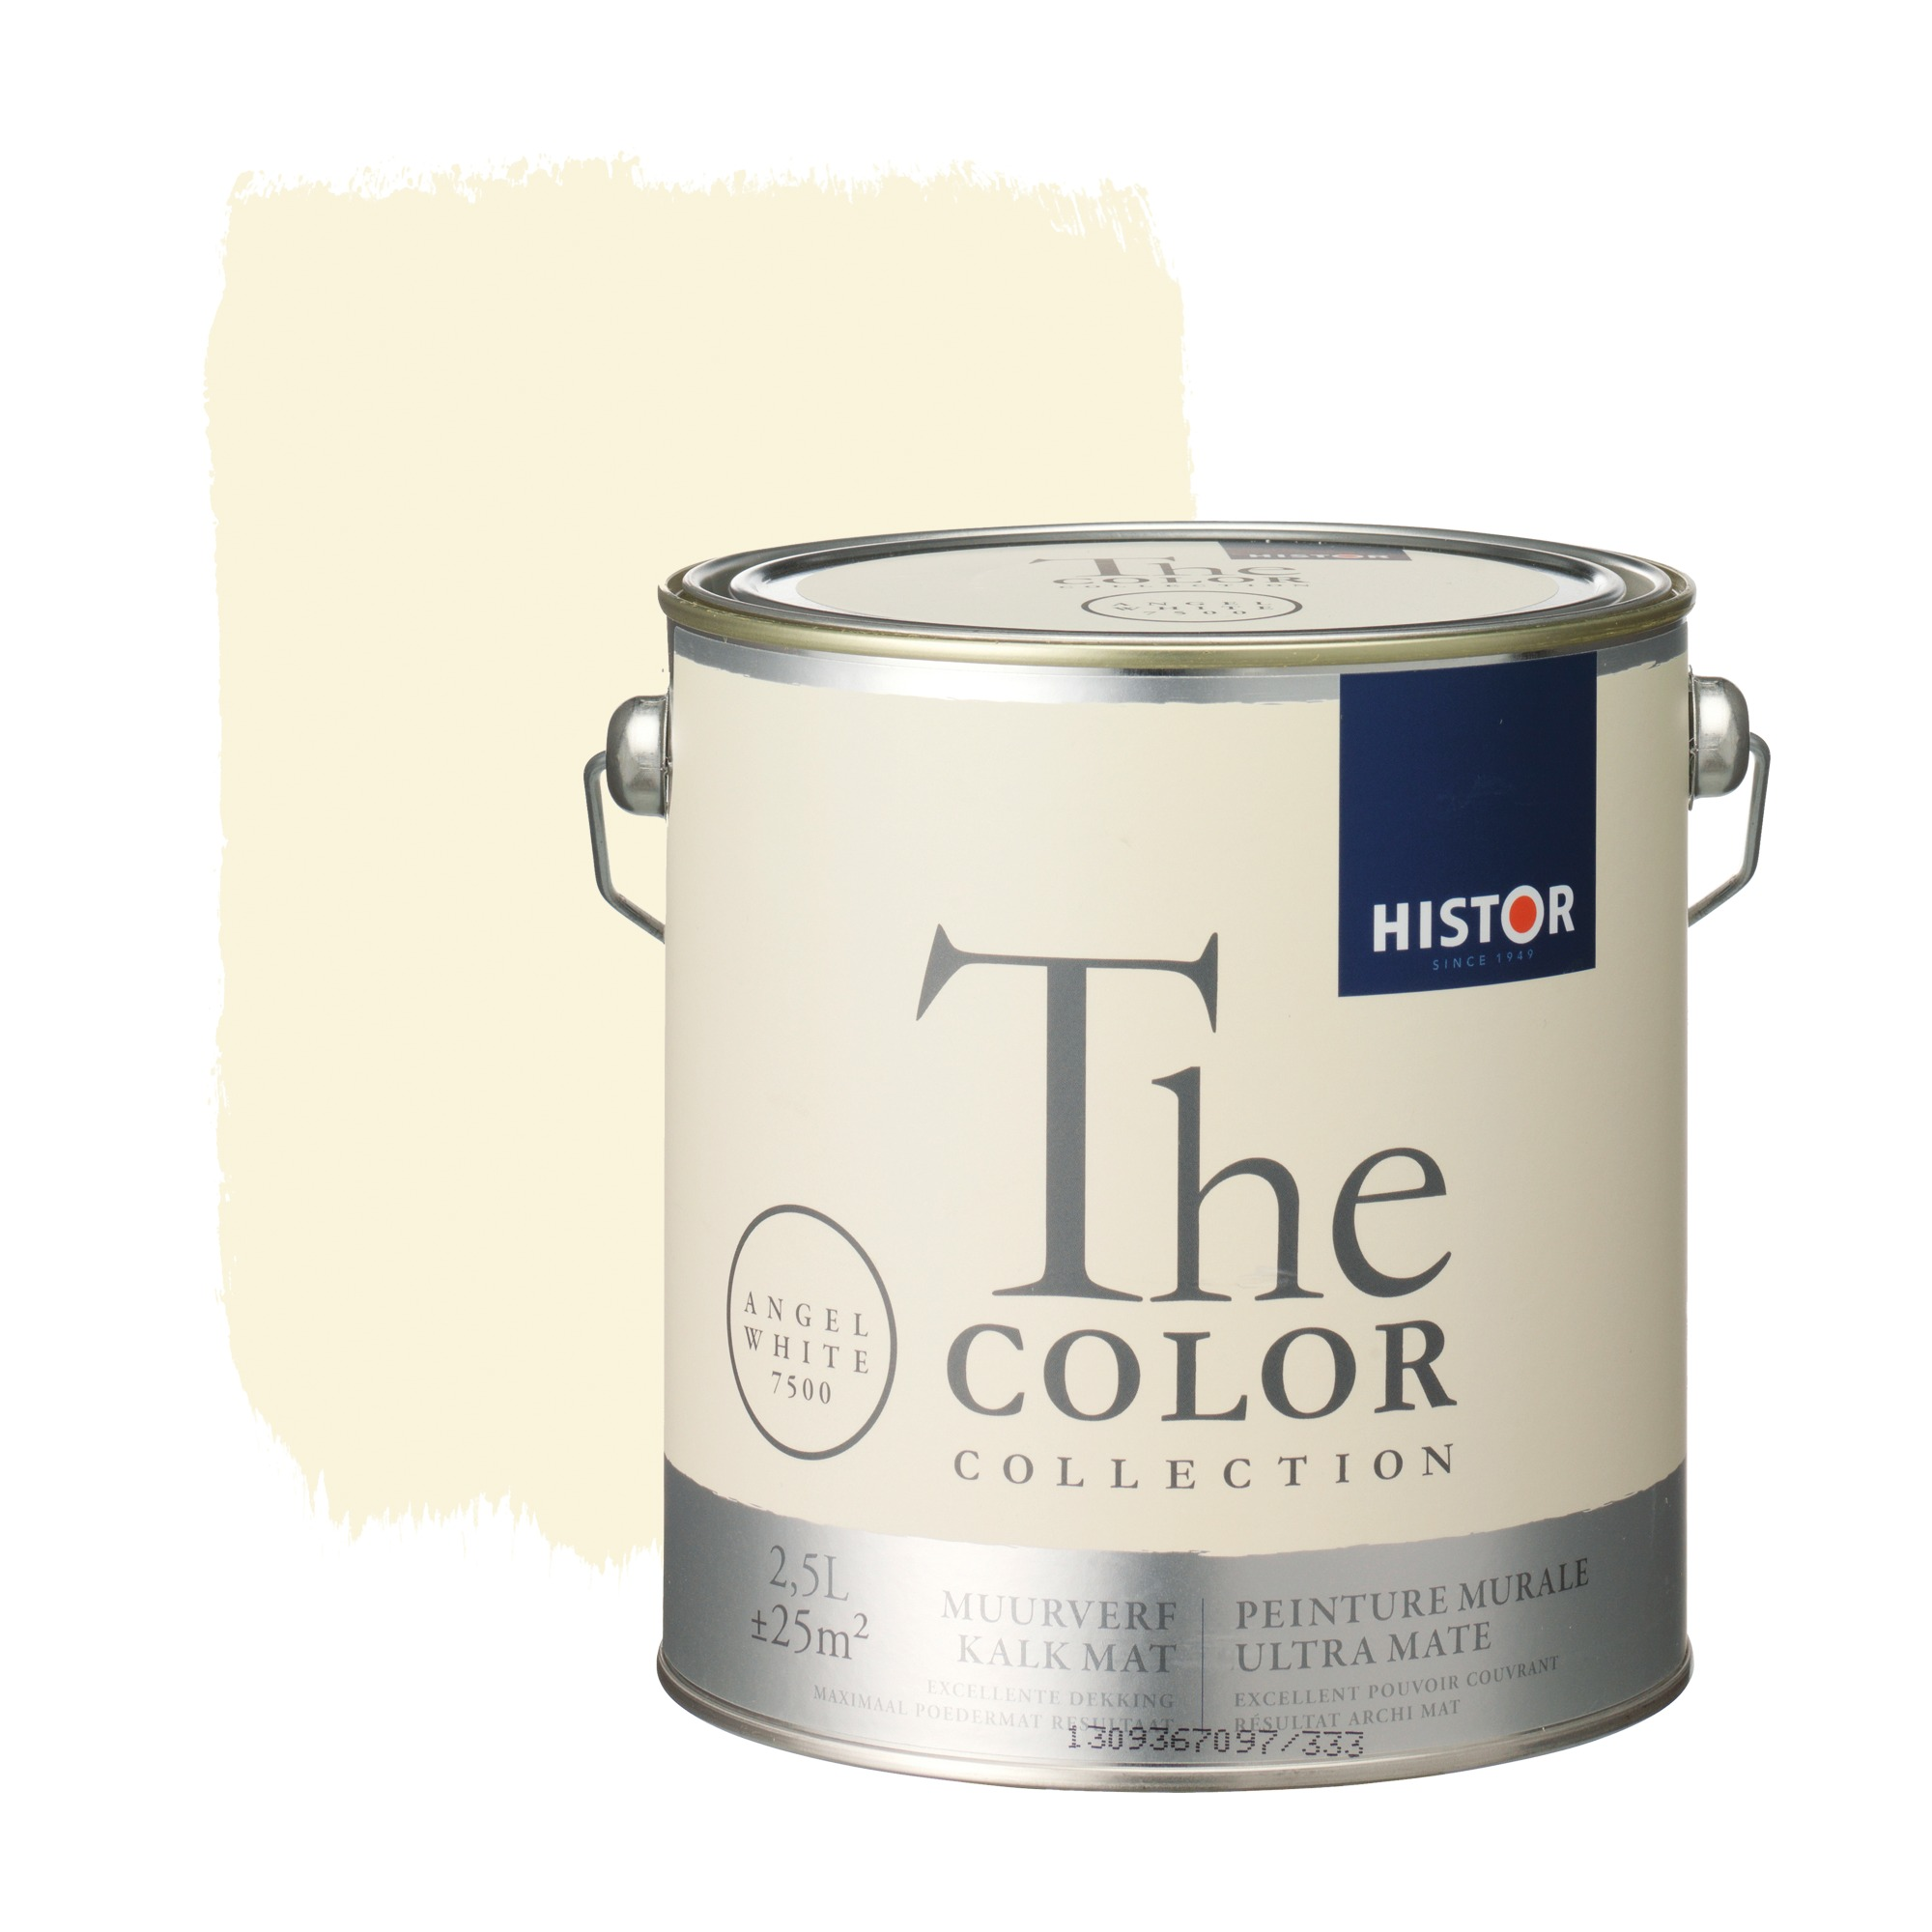 Histor the color collection muurverf kalkmat angel white 7500 2,5 l